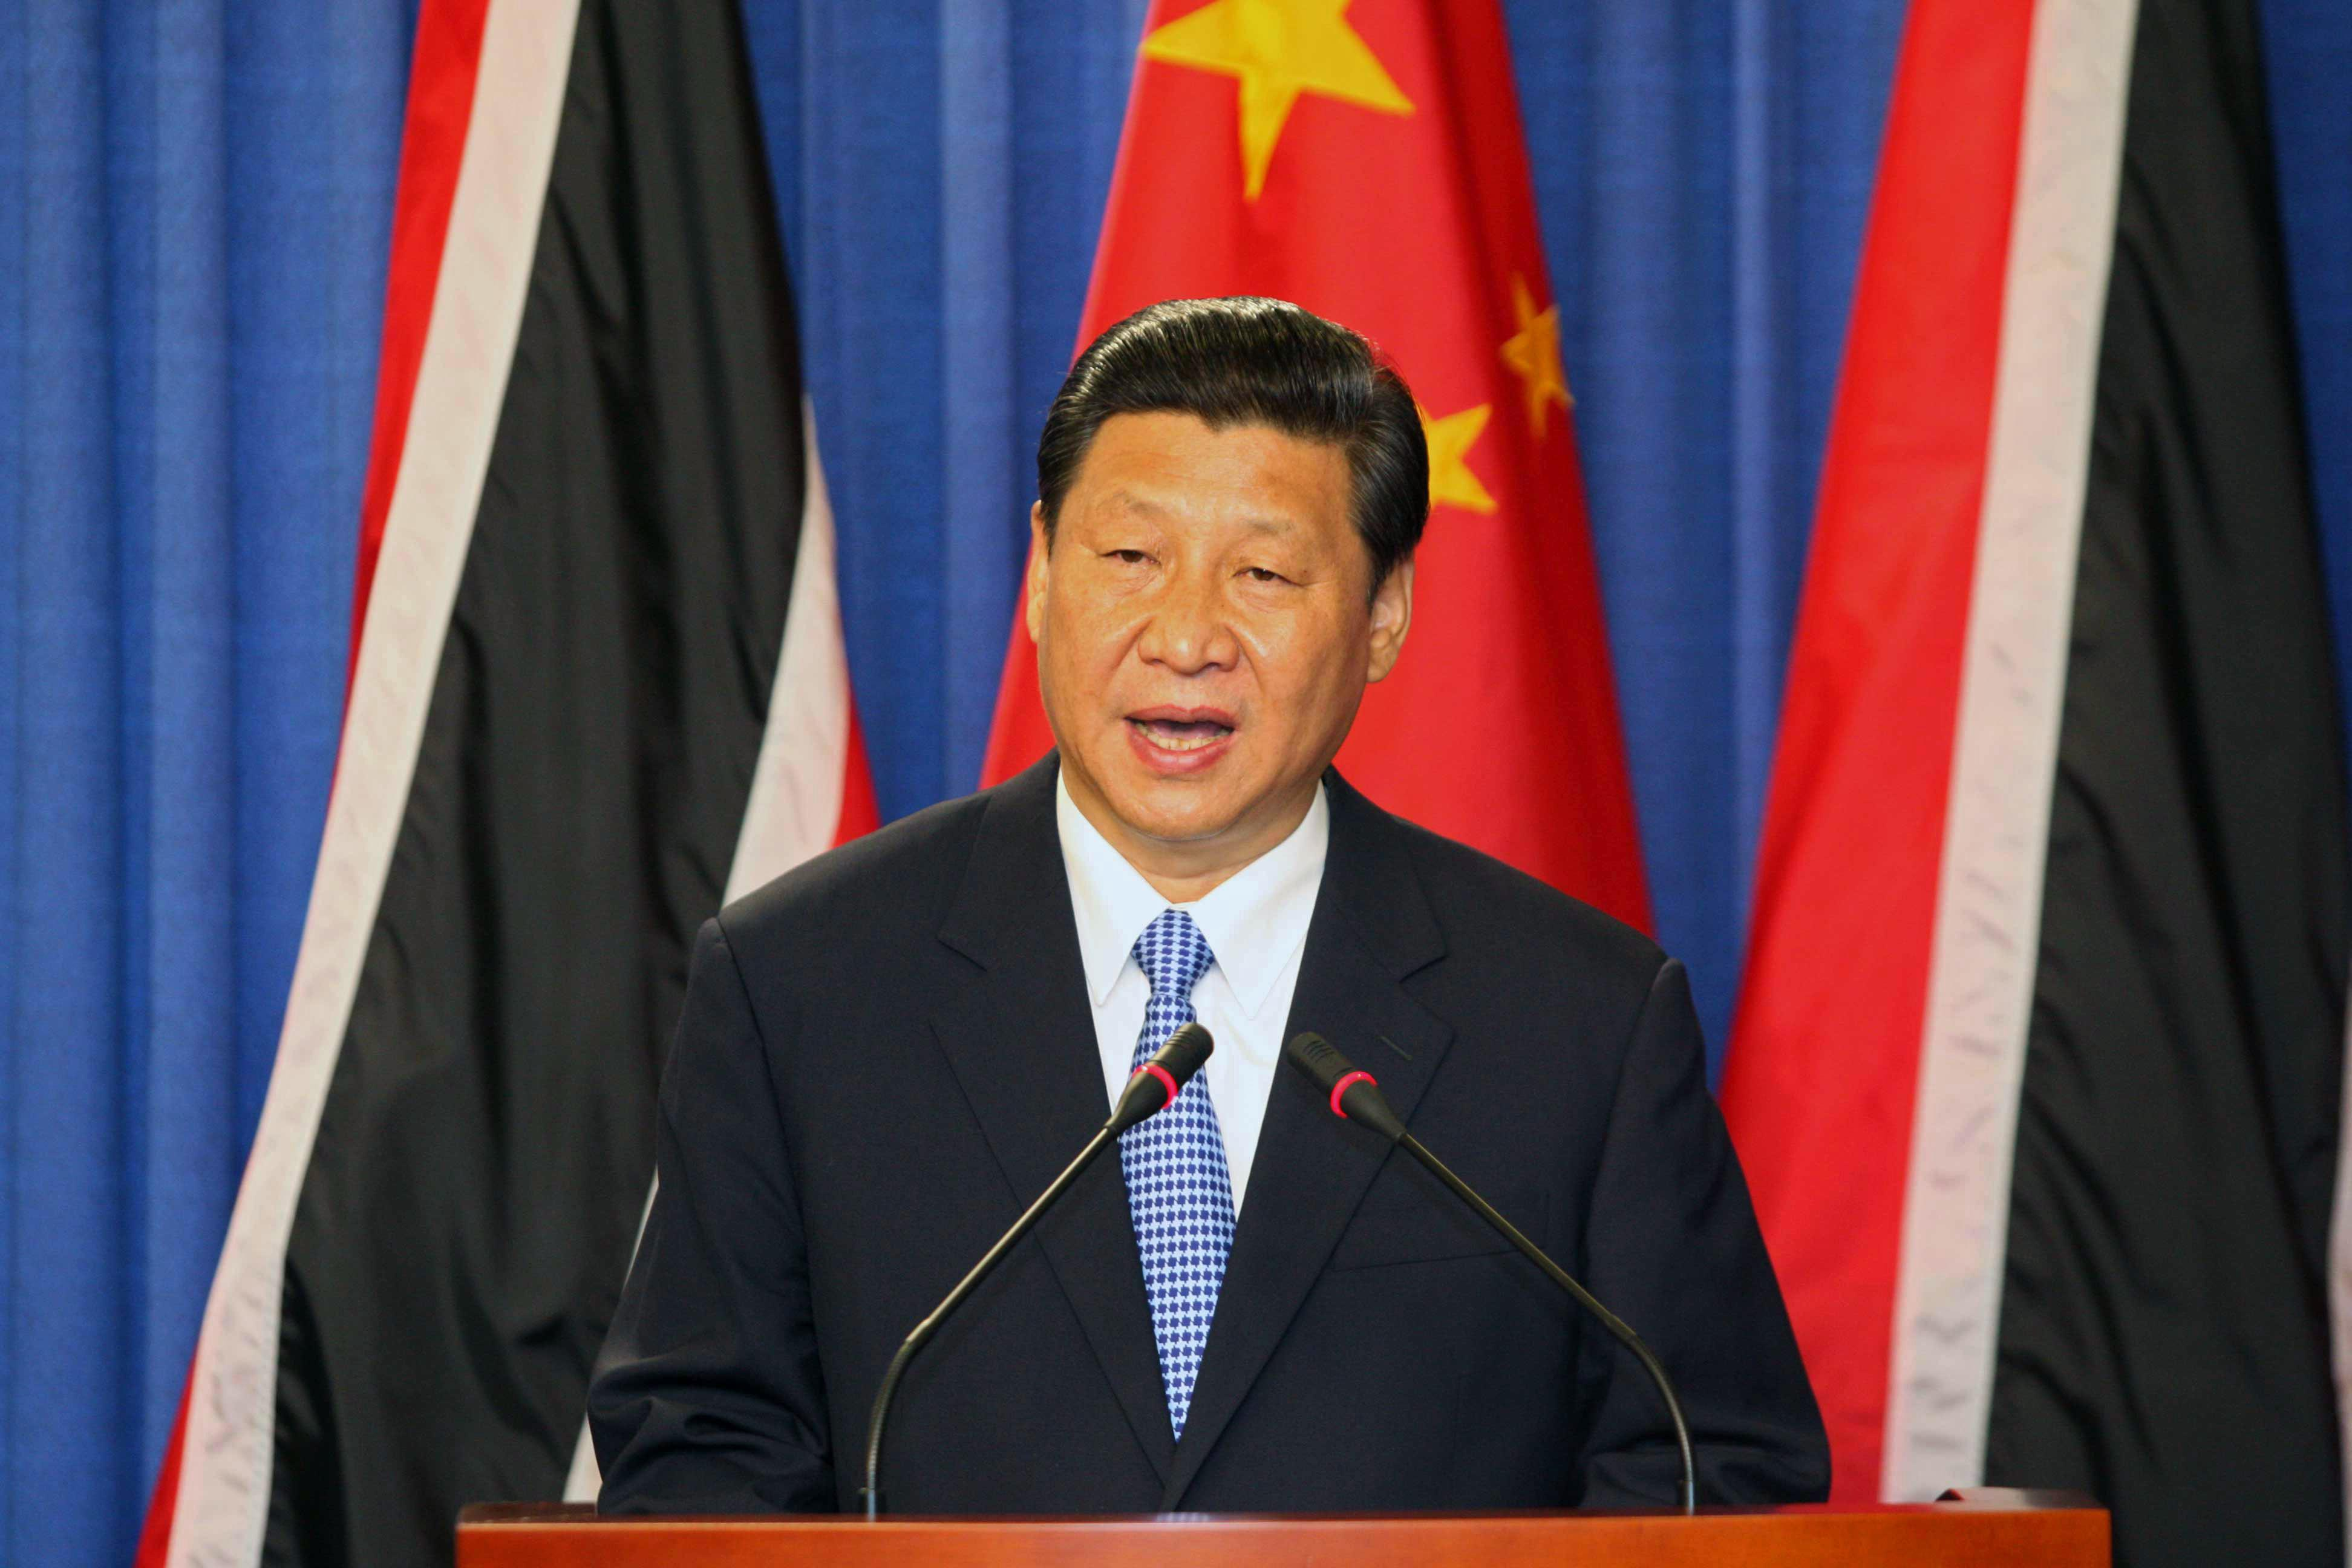 China's President Xi Jinping speaks during a joint news conference with Trinidad & Tobago's Prime Minister Kamla Persad-Bissessar, unseen, at the Diplomatic Center in St. Ann's, Trinidad, Saturday, June 1, 2013. Xi Jinping announced China was awarding Trinidad a $250 million loan to build a children's hospital during the first stop of his four-country regional tour in the Americas. He's also traveling to Mexico, Costa Rica and the U.S. (AP Photo/Anthony Harris)